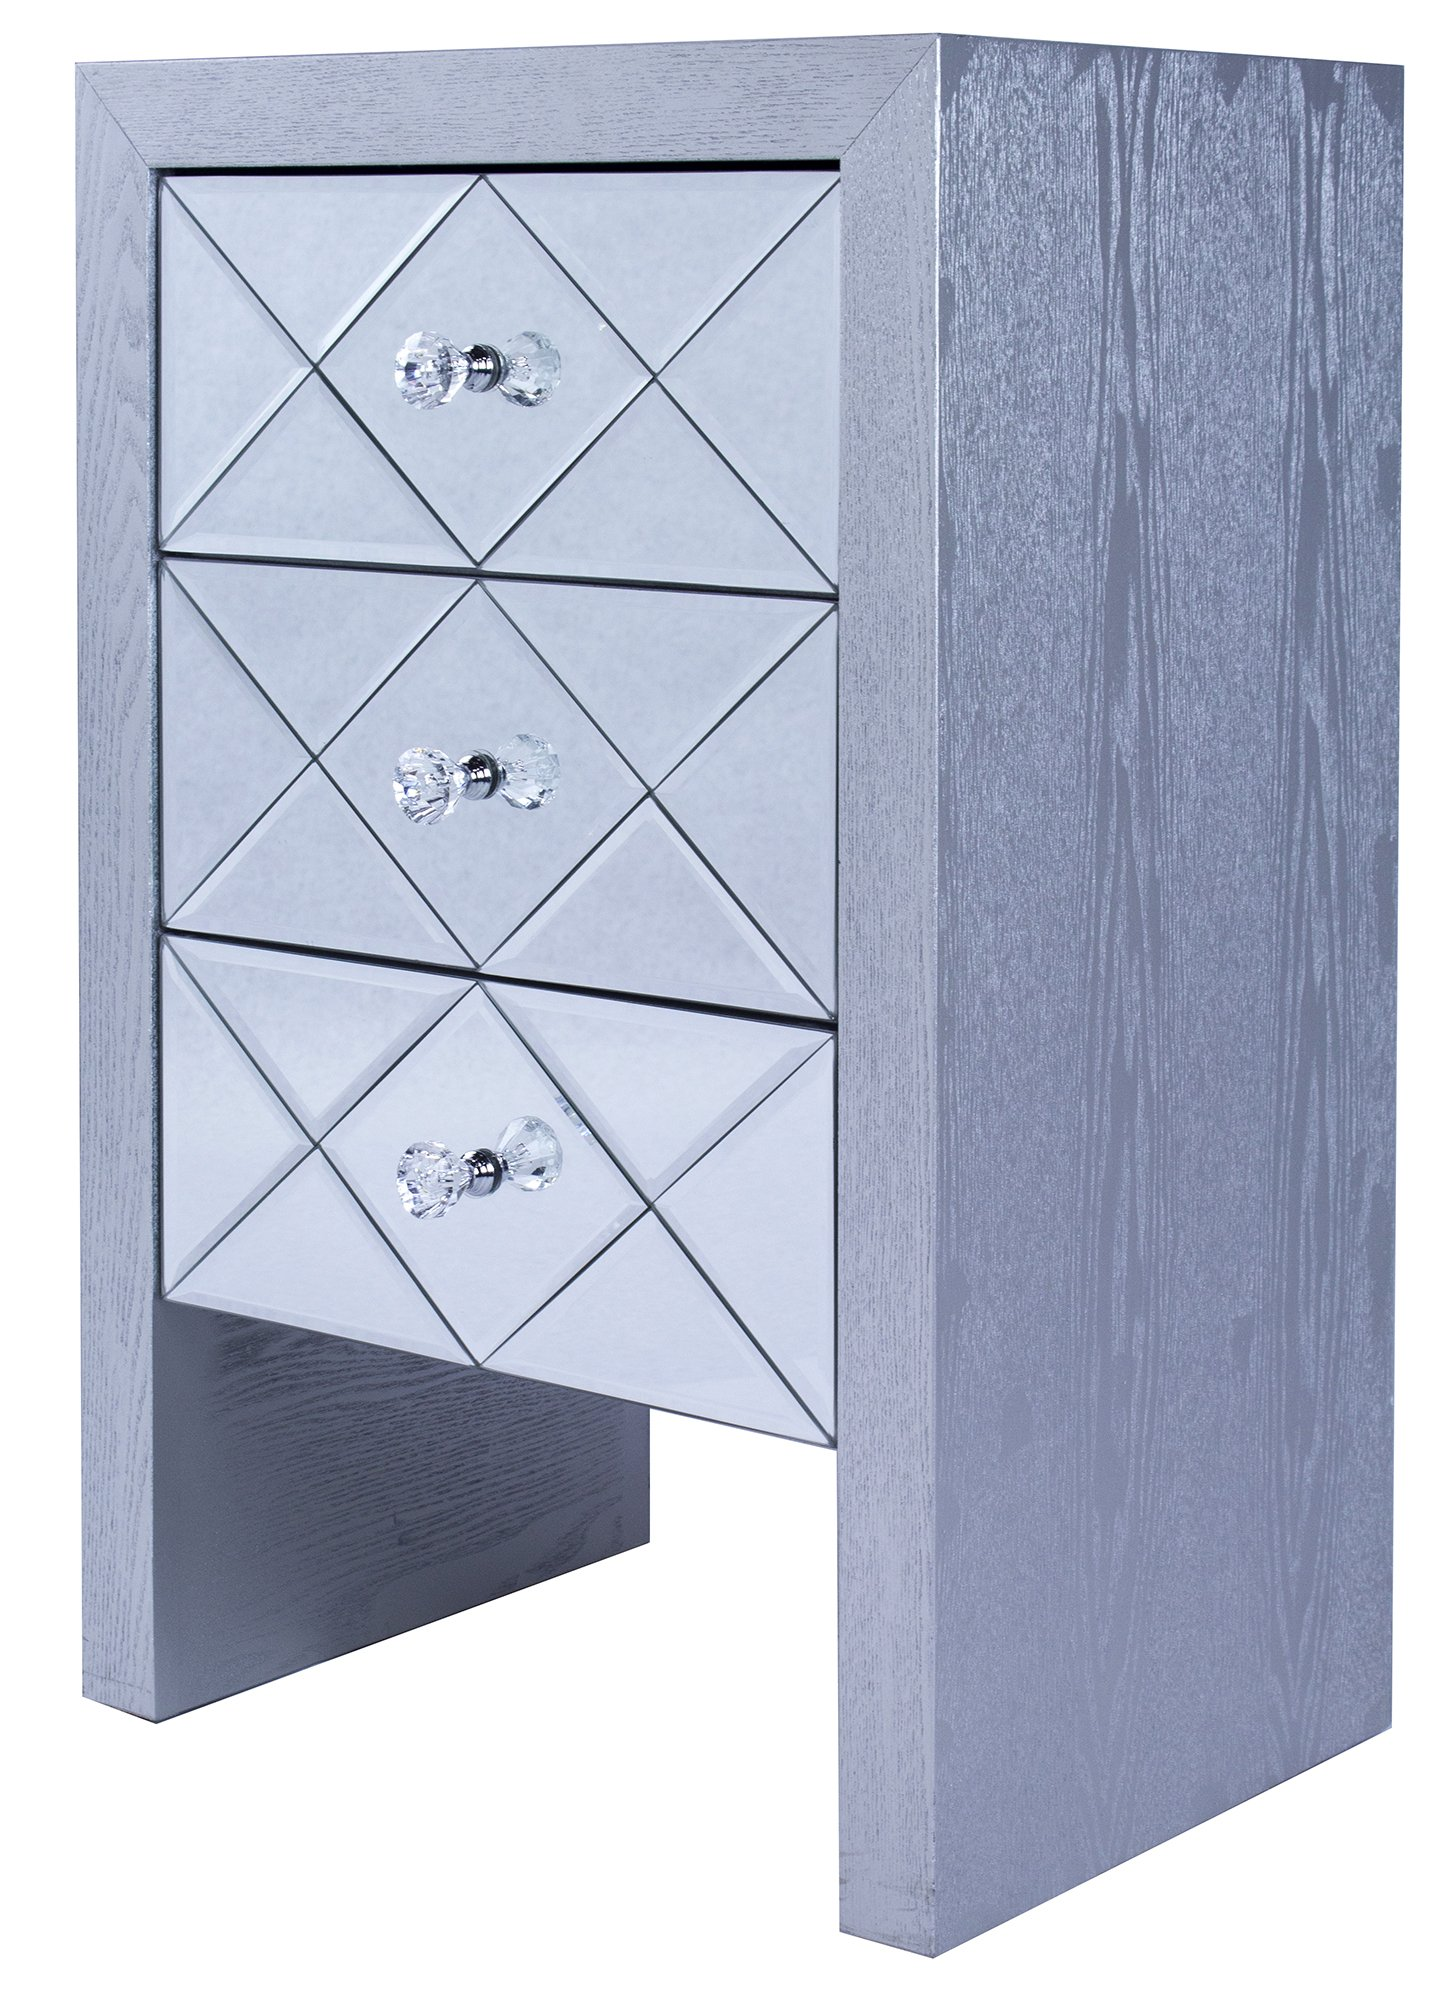 Heather Ann Creations Wooden 3 Drawer Chest/Console with Front Beveled Mirrored and Accent Finish, 28'' x 17.7'', Silver